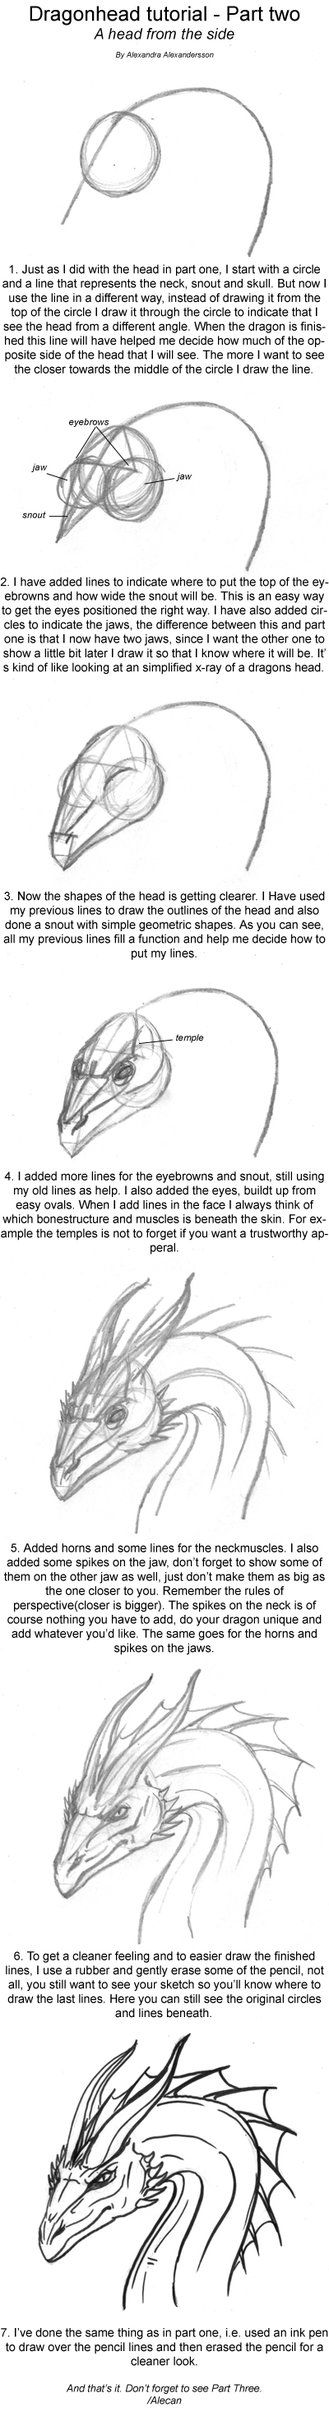 Dragonhead Tutorial part two by ~alecan on deviantART